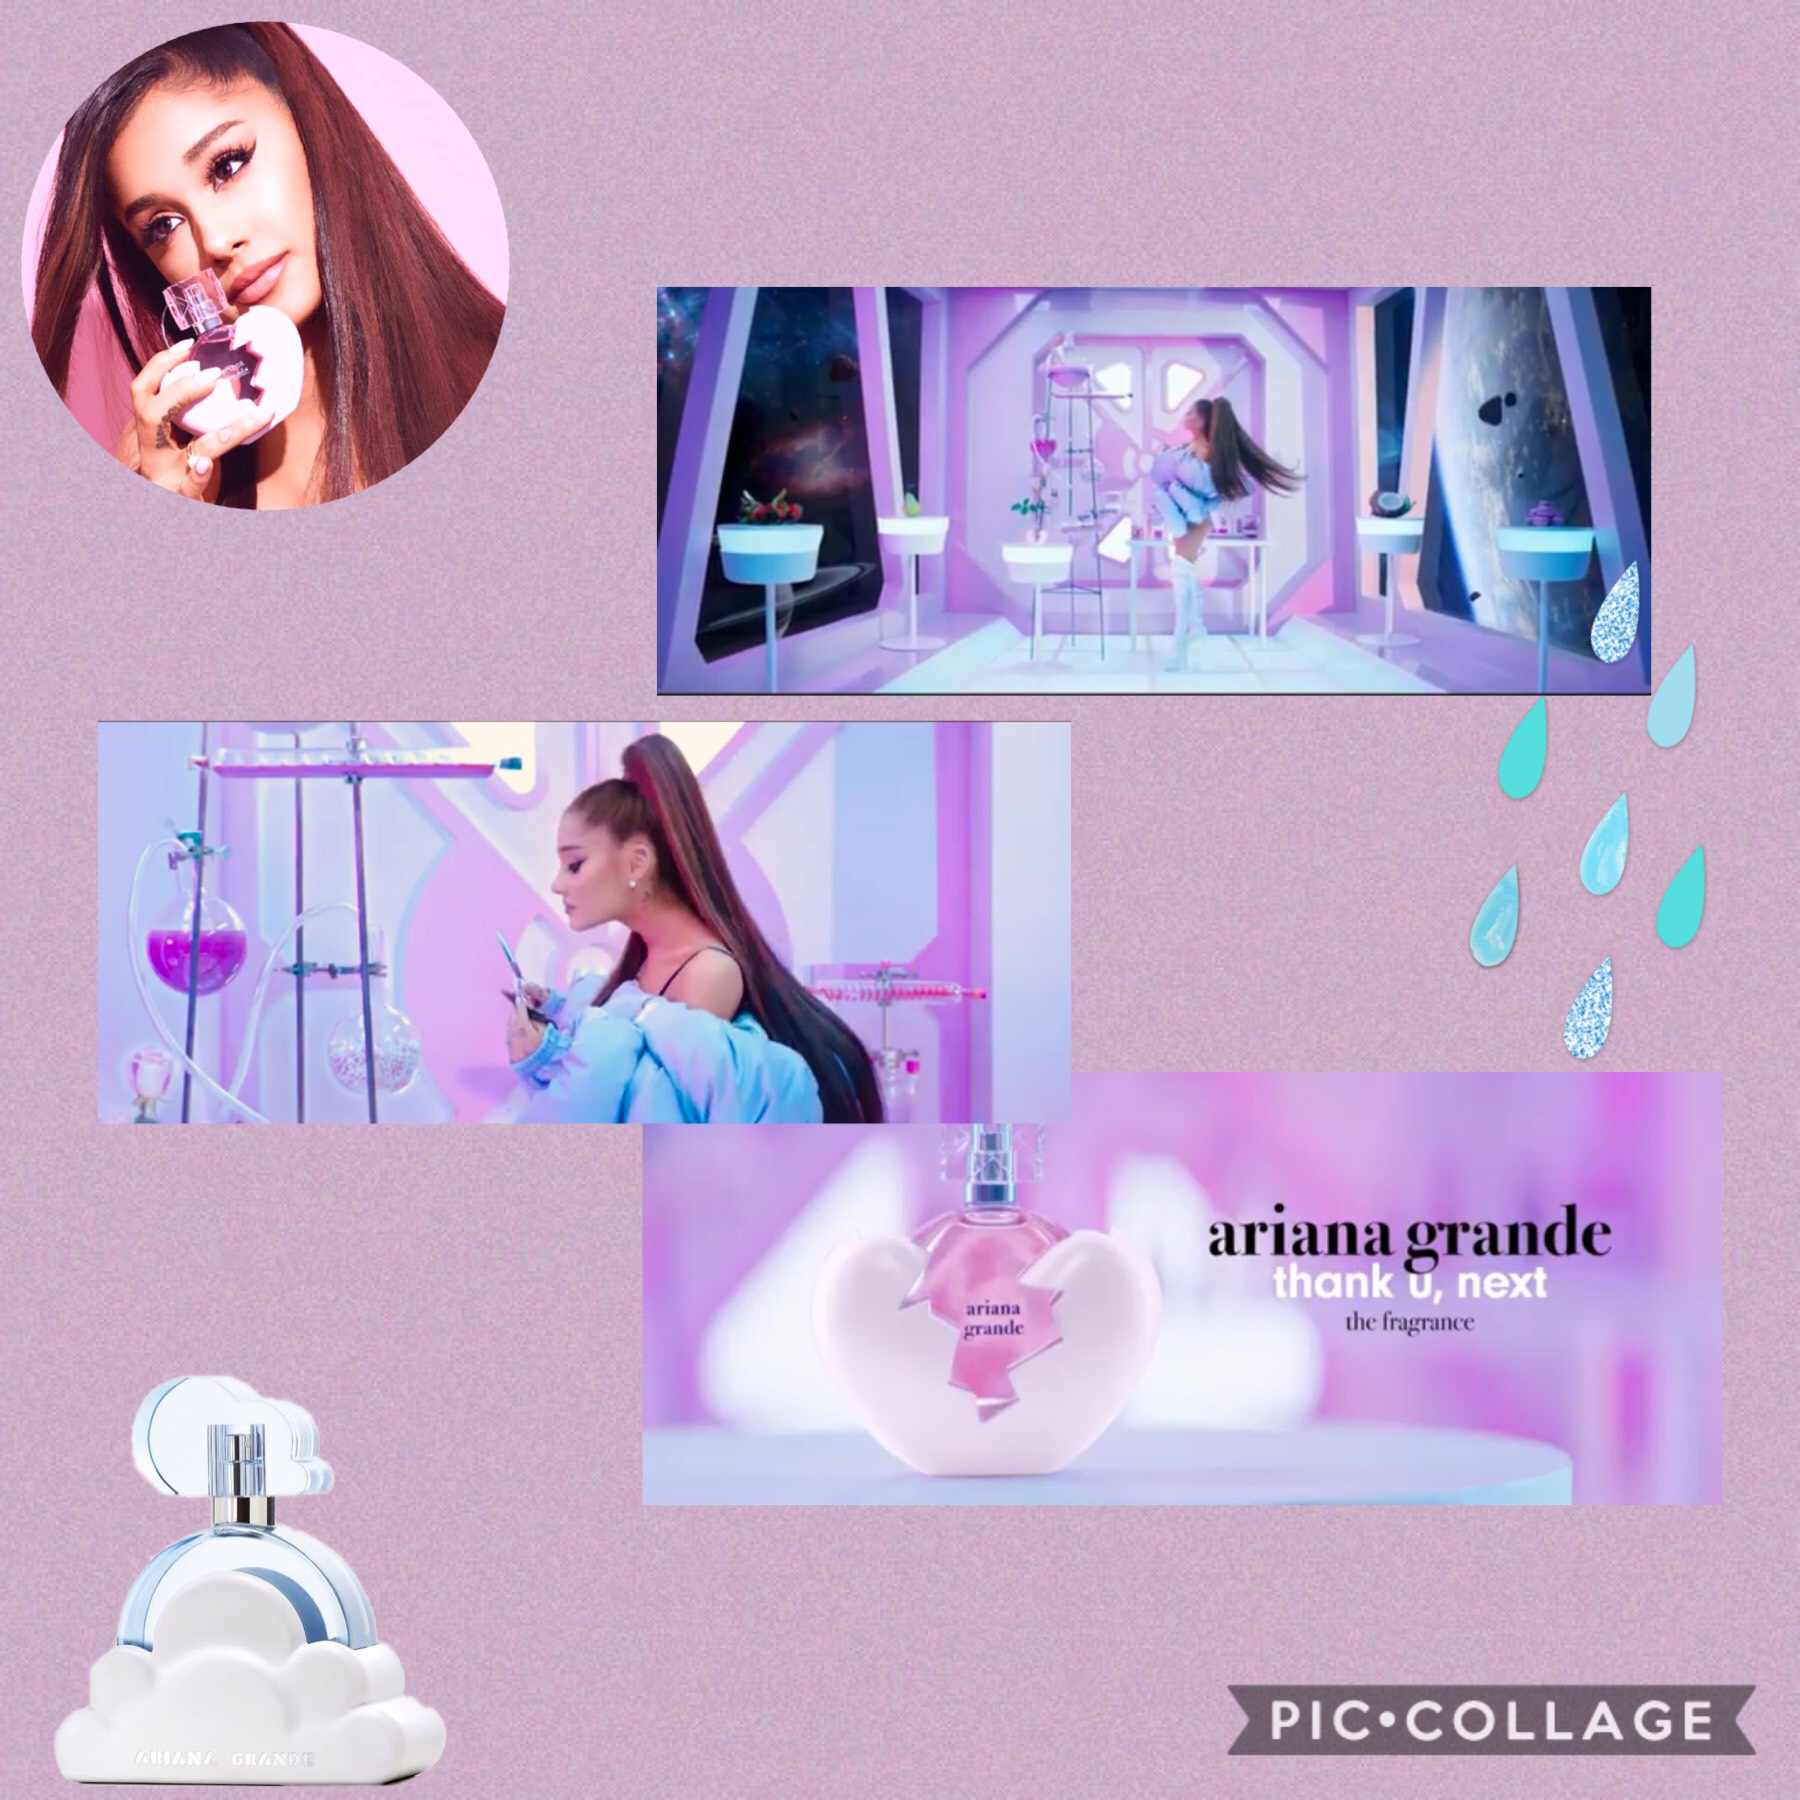 🖤 TAP🖤  Ariana Grande's new perfume 'thank u, next' is now out! 🖤💕 In the pink laboratory photo you can spot strawberry, peach, coconut, purple donuts and a small pot plant. Maybe these are some of the ingredients? 🤔